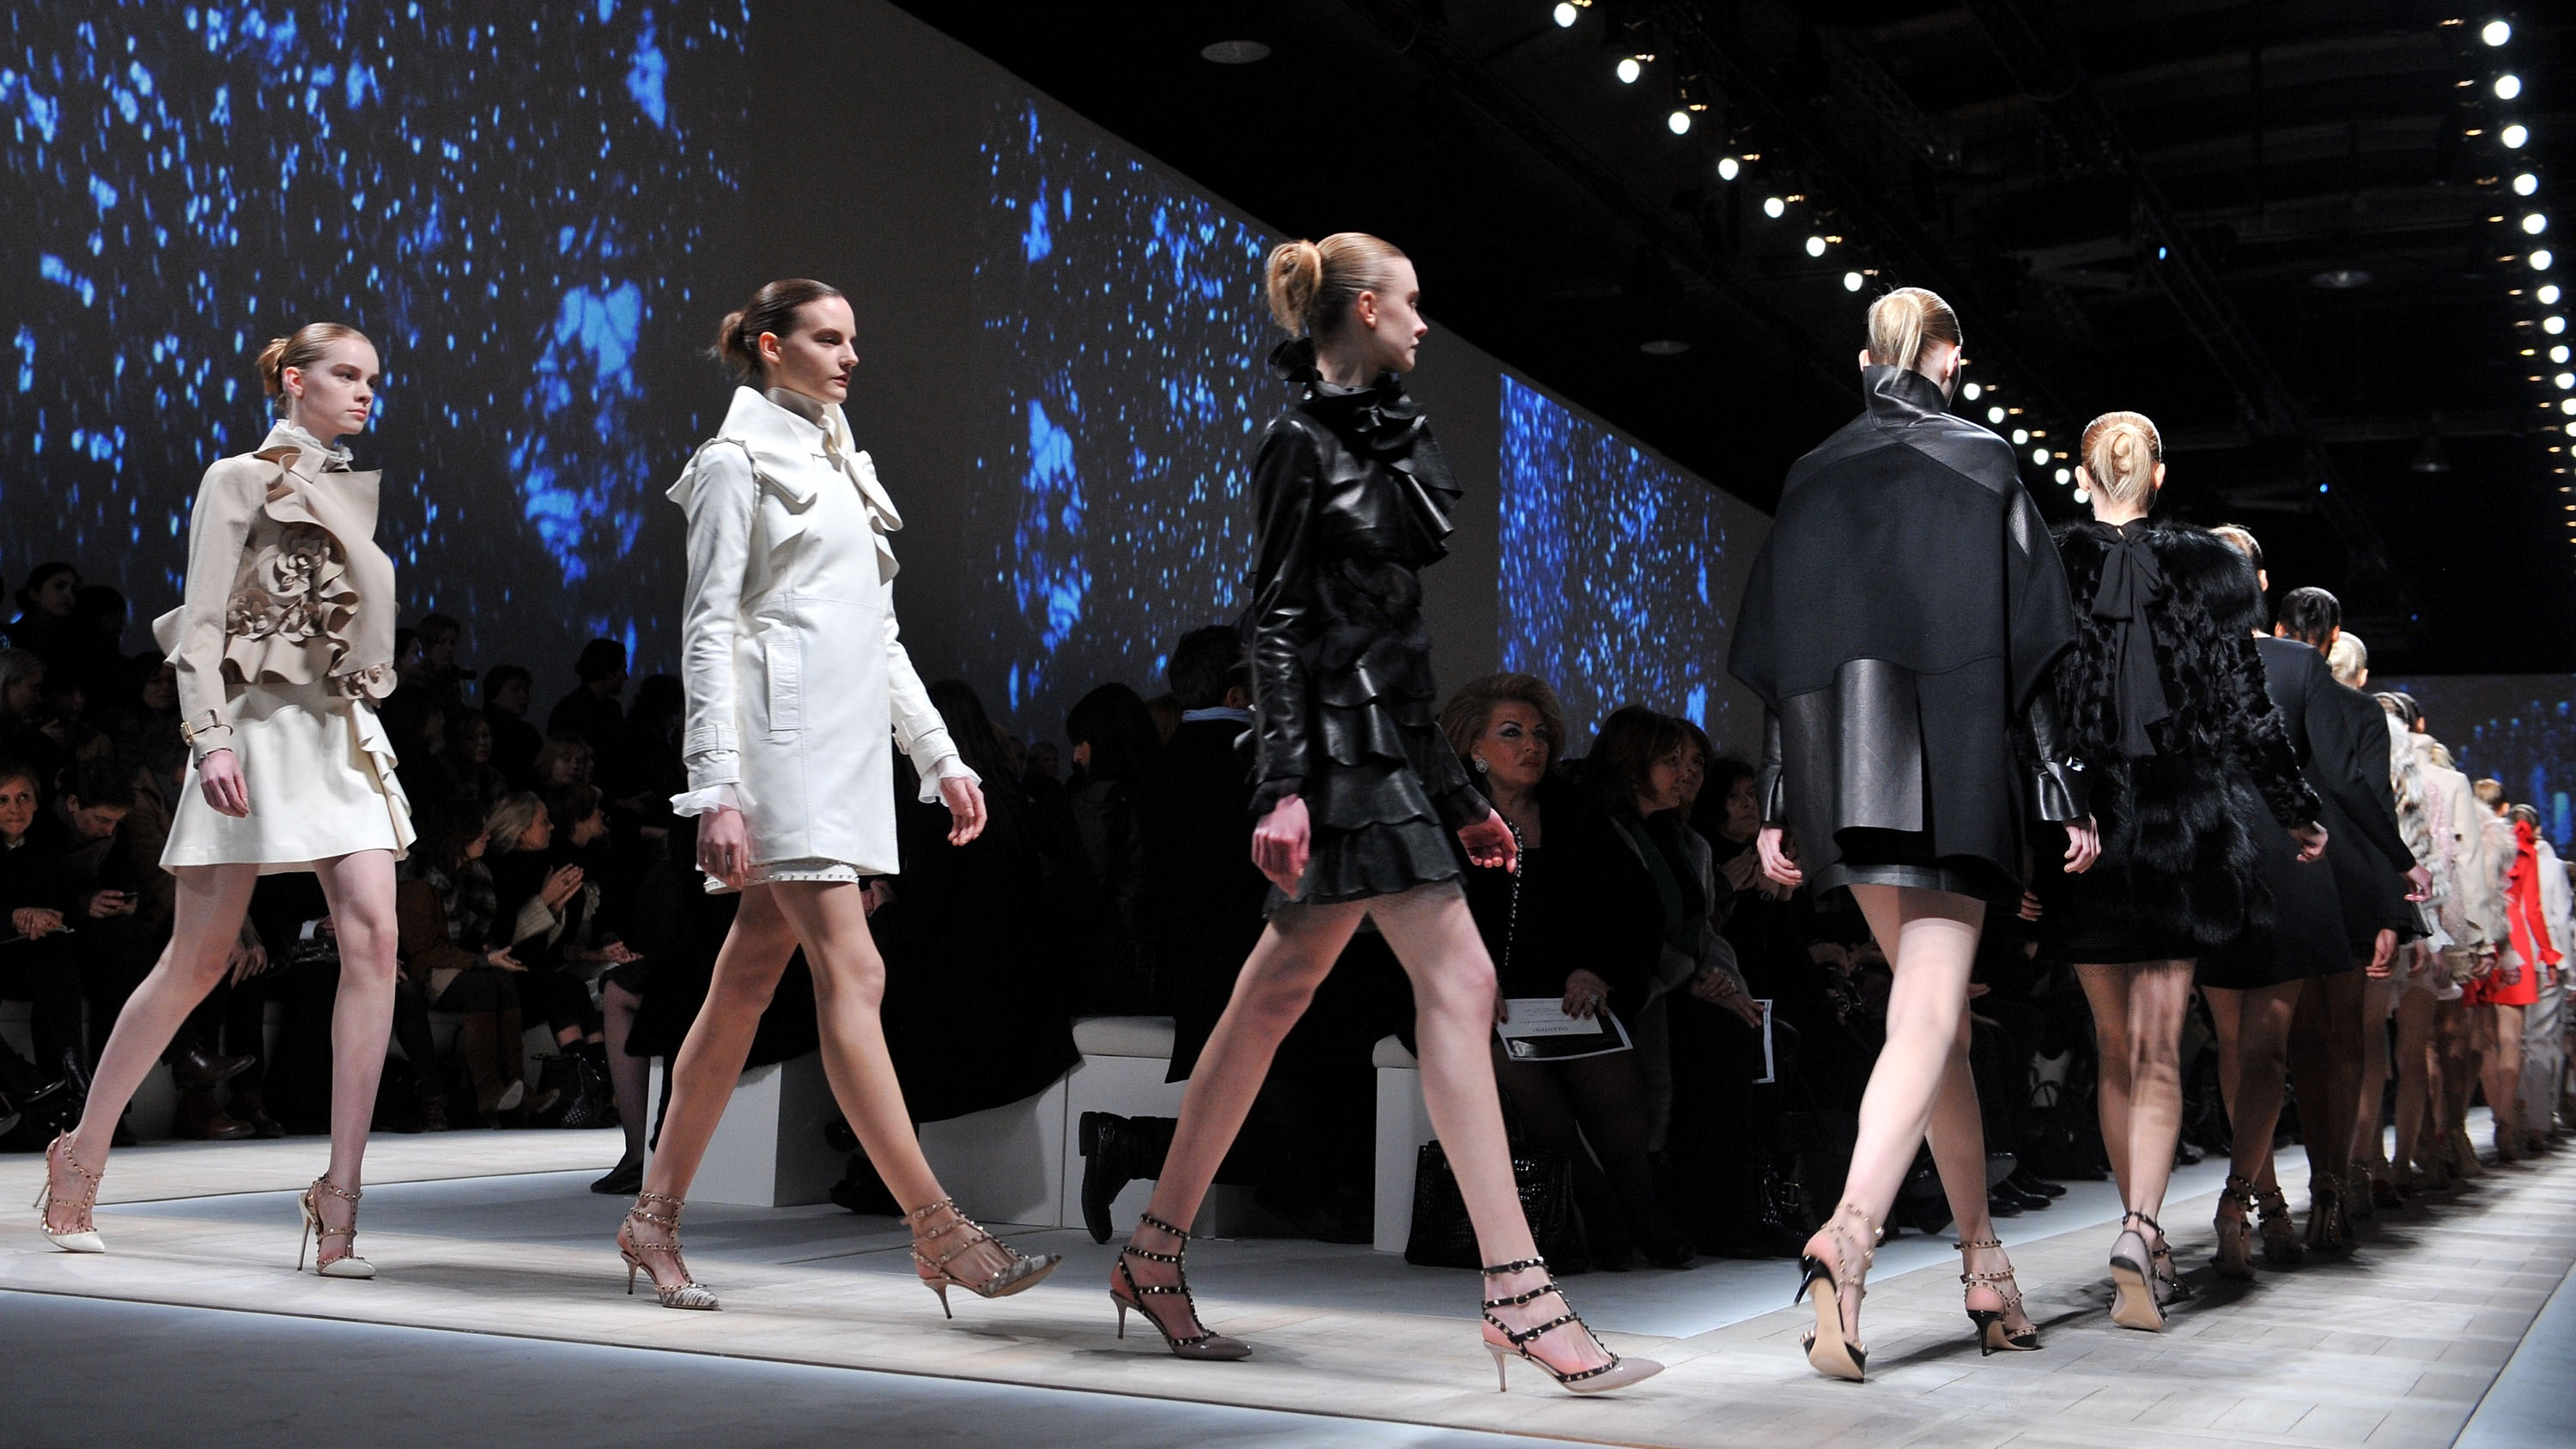 Models walk the runway at the end of the Valentino Ready to Wear show as part of the Paris Womenswear Fashion Week Fall/Winter 2010 Show at Halle Freyssinet on March 9, 2010 in Paris, France.